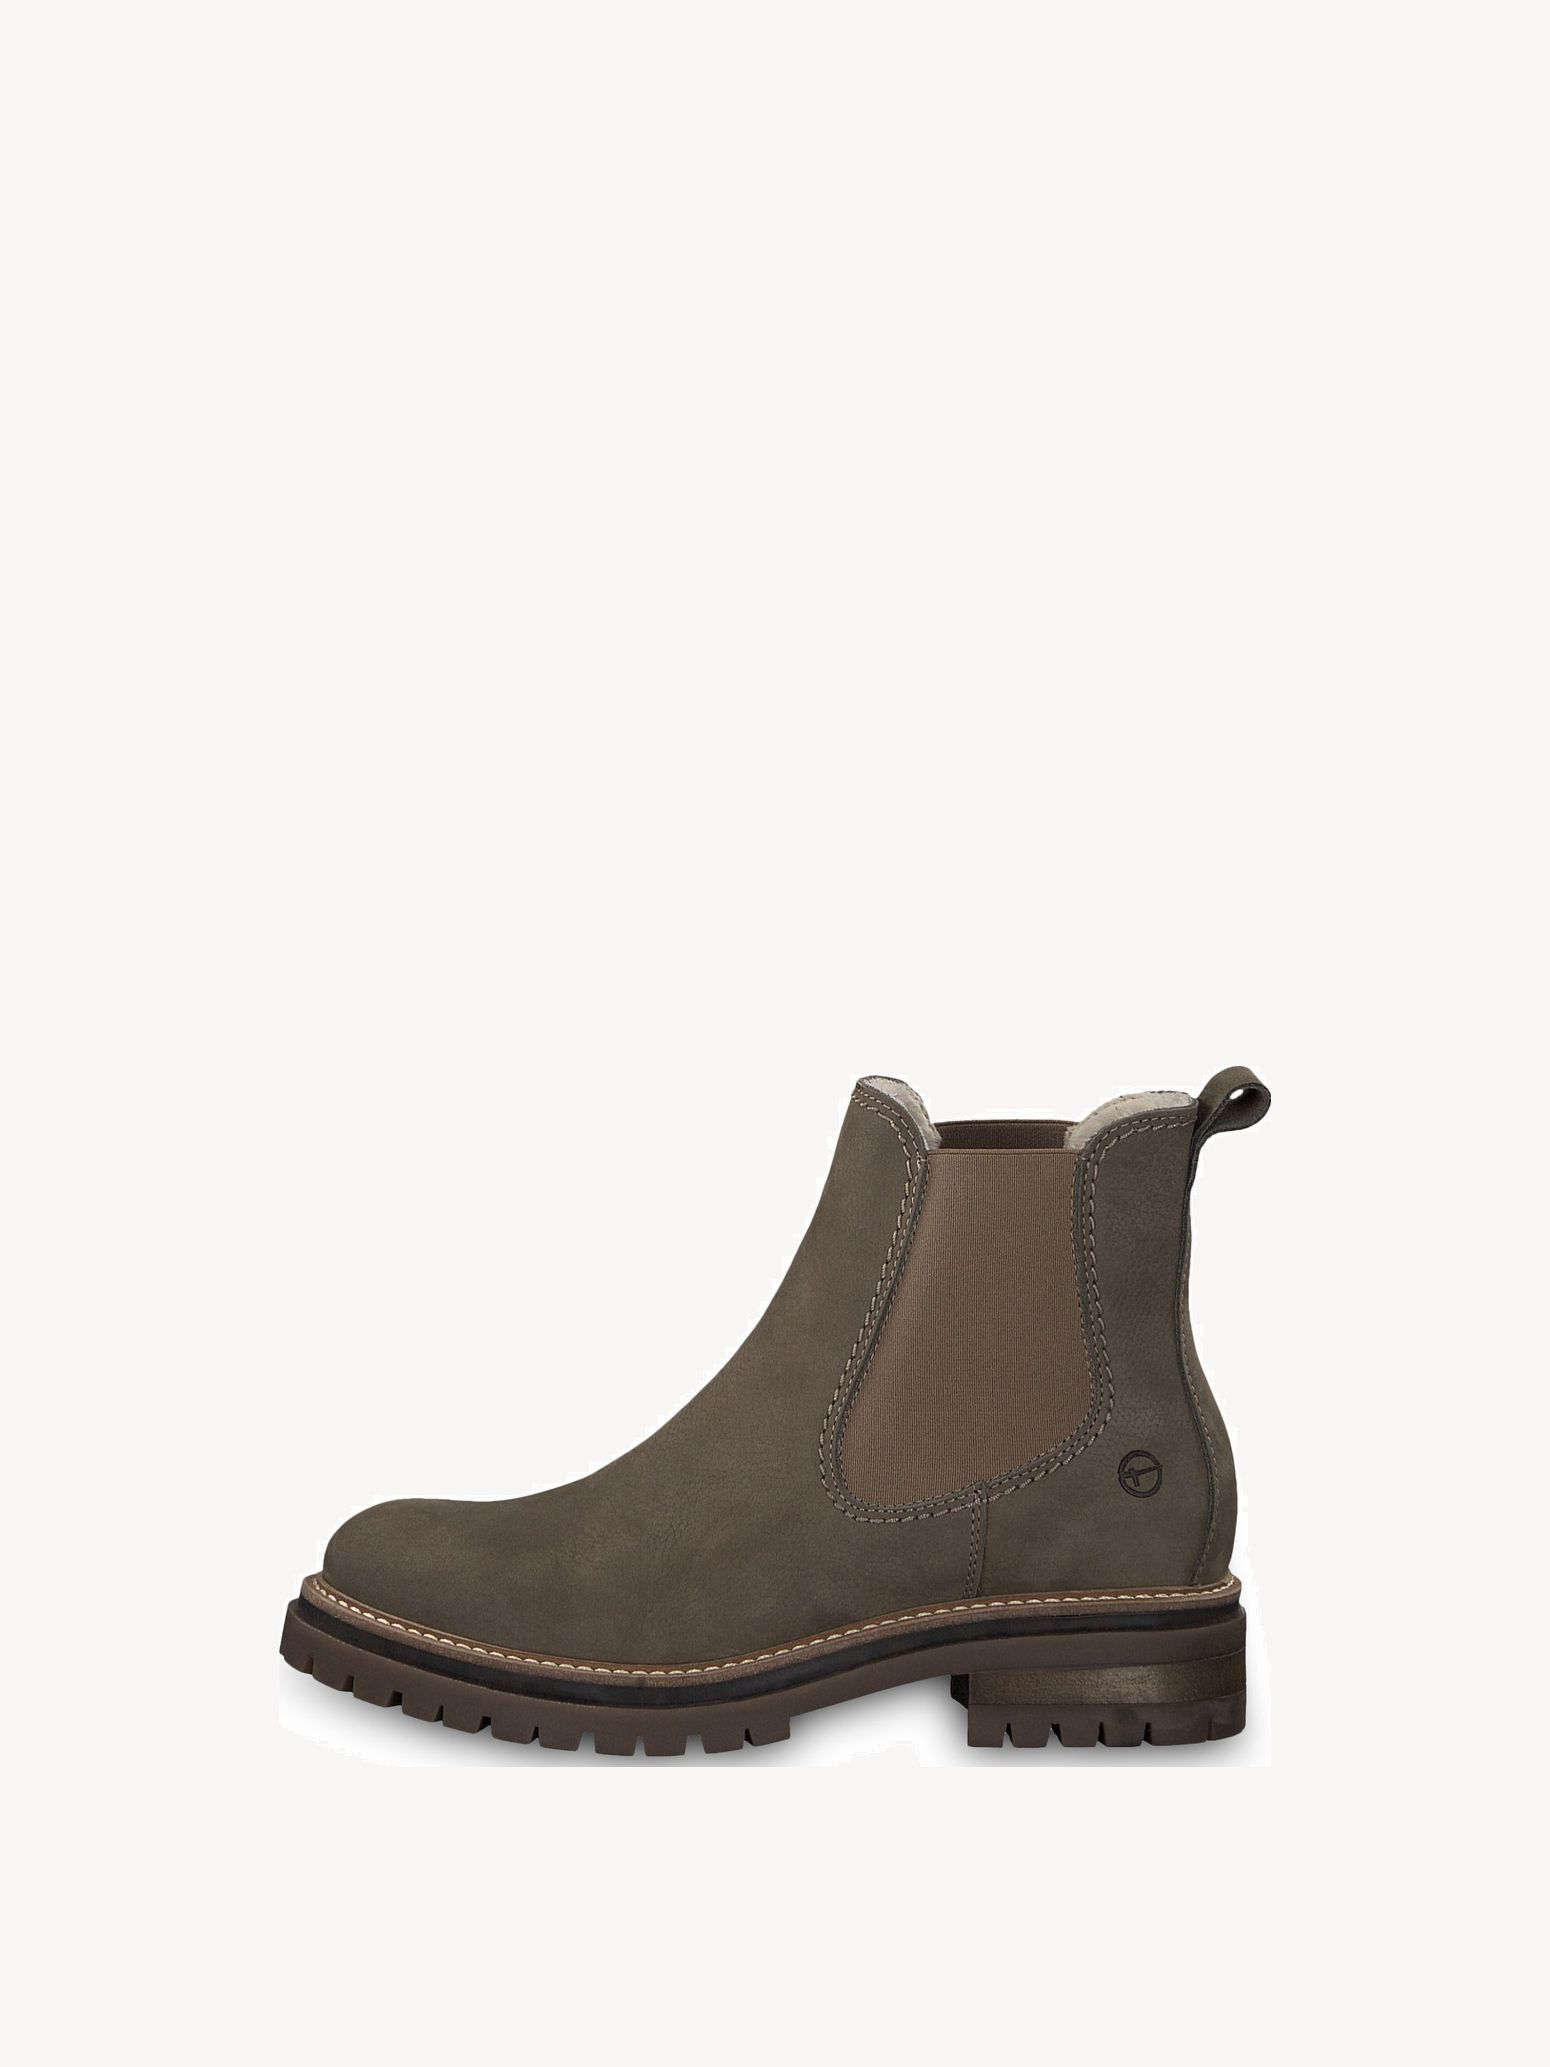 Topsoft 1-1-25474-21  Buy Tamaris Chelsea boots online! 57e4f22109